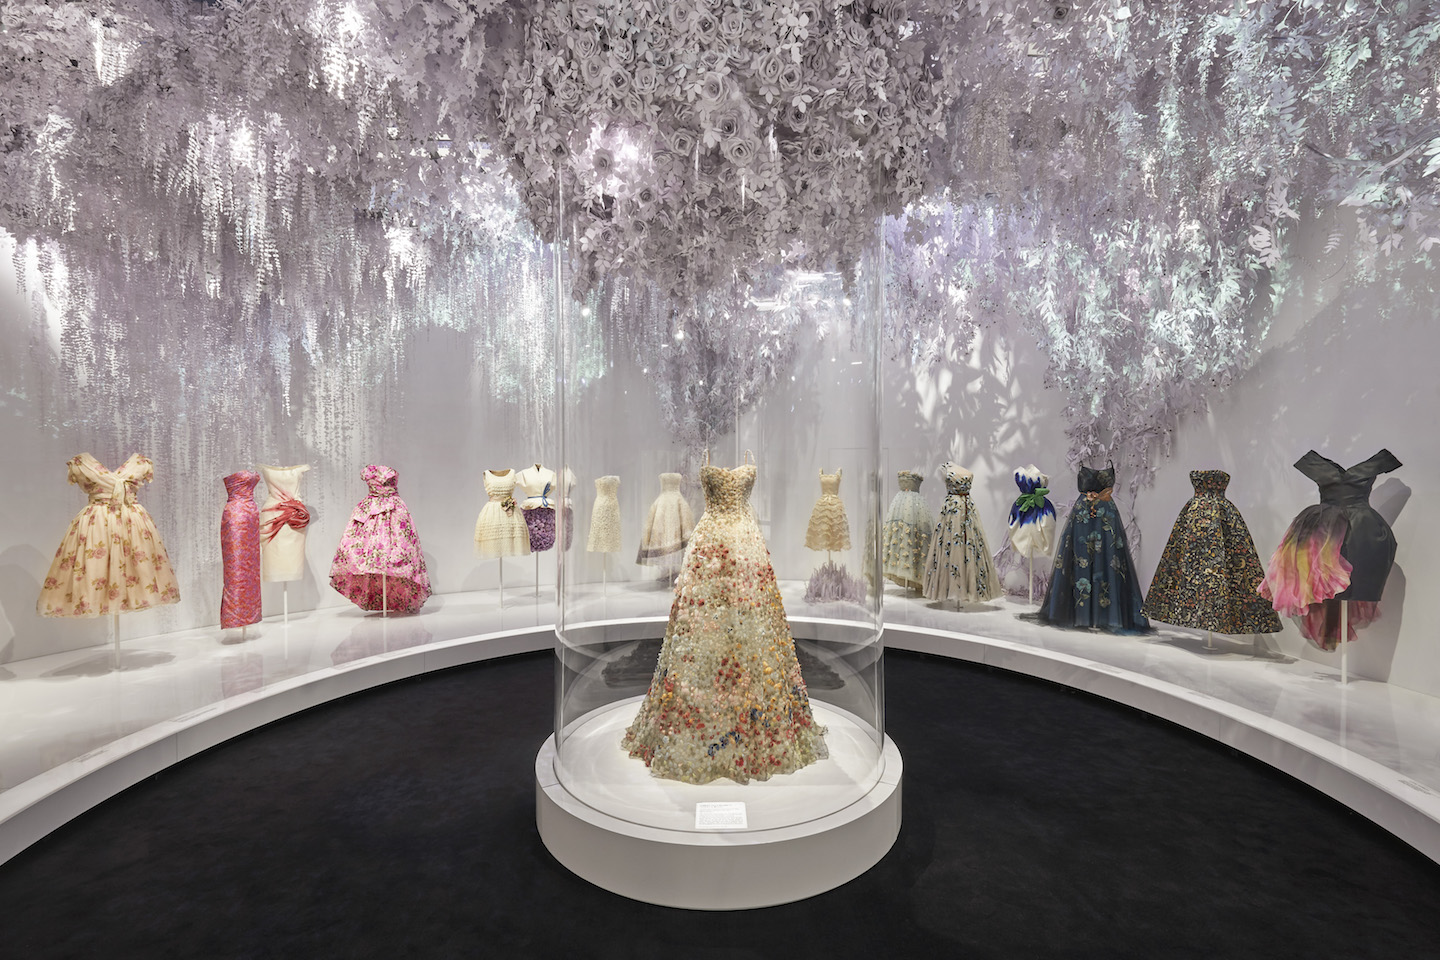 644abbe0bfb0 The Christian Dior V A exhibition is as impressive as we d hoped ...